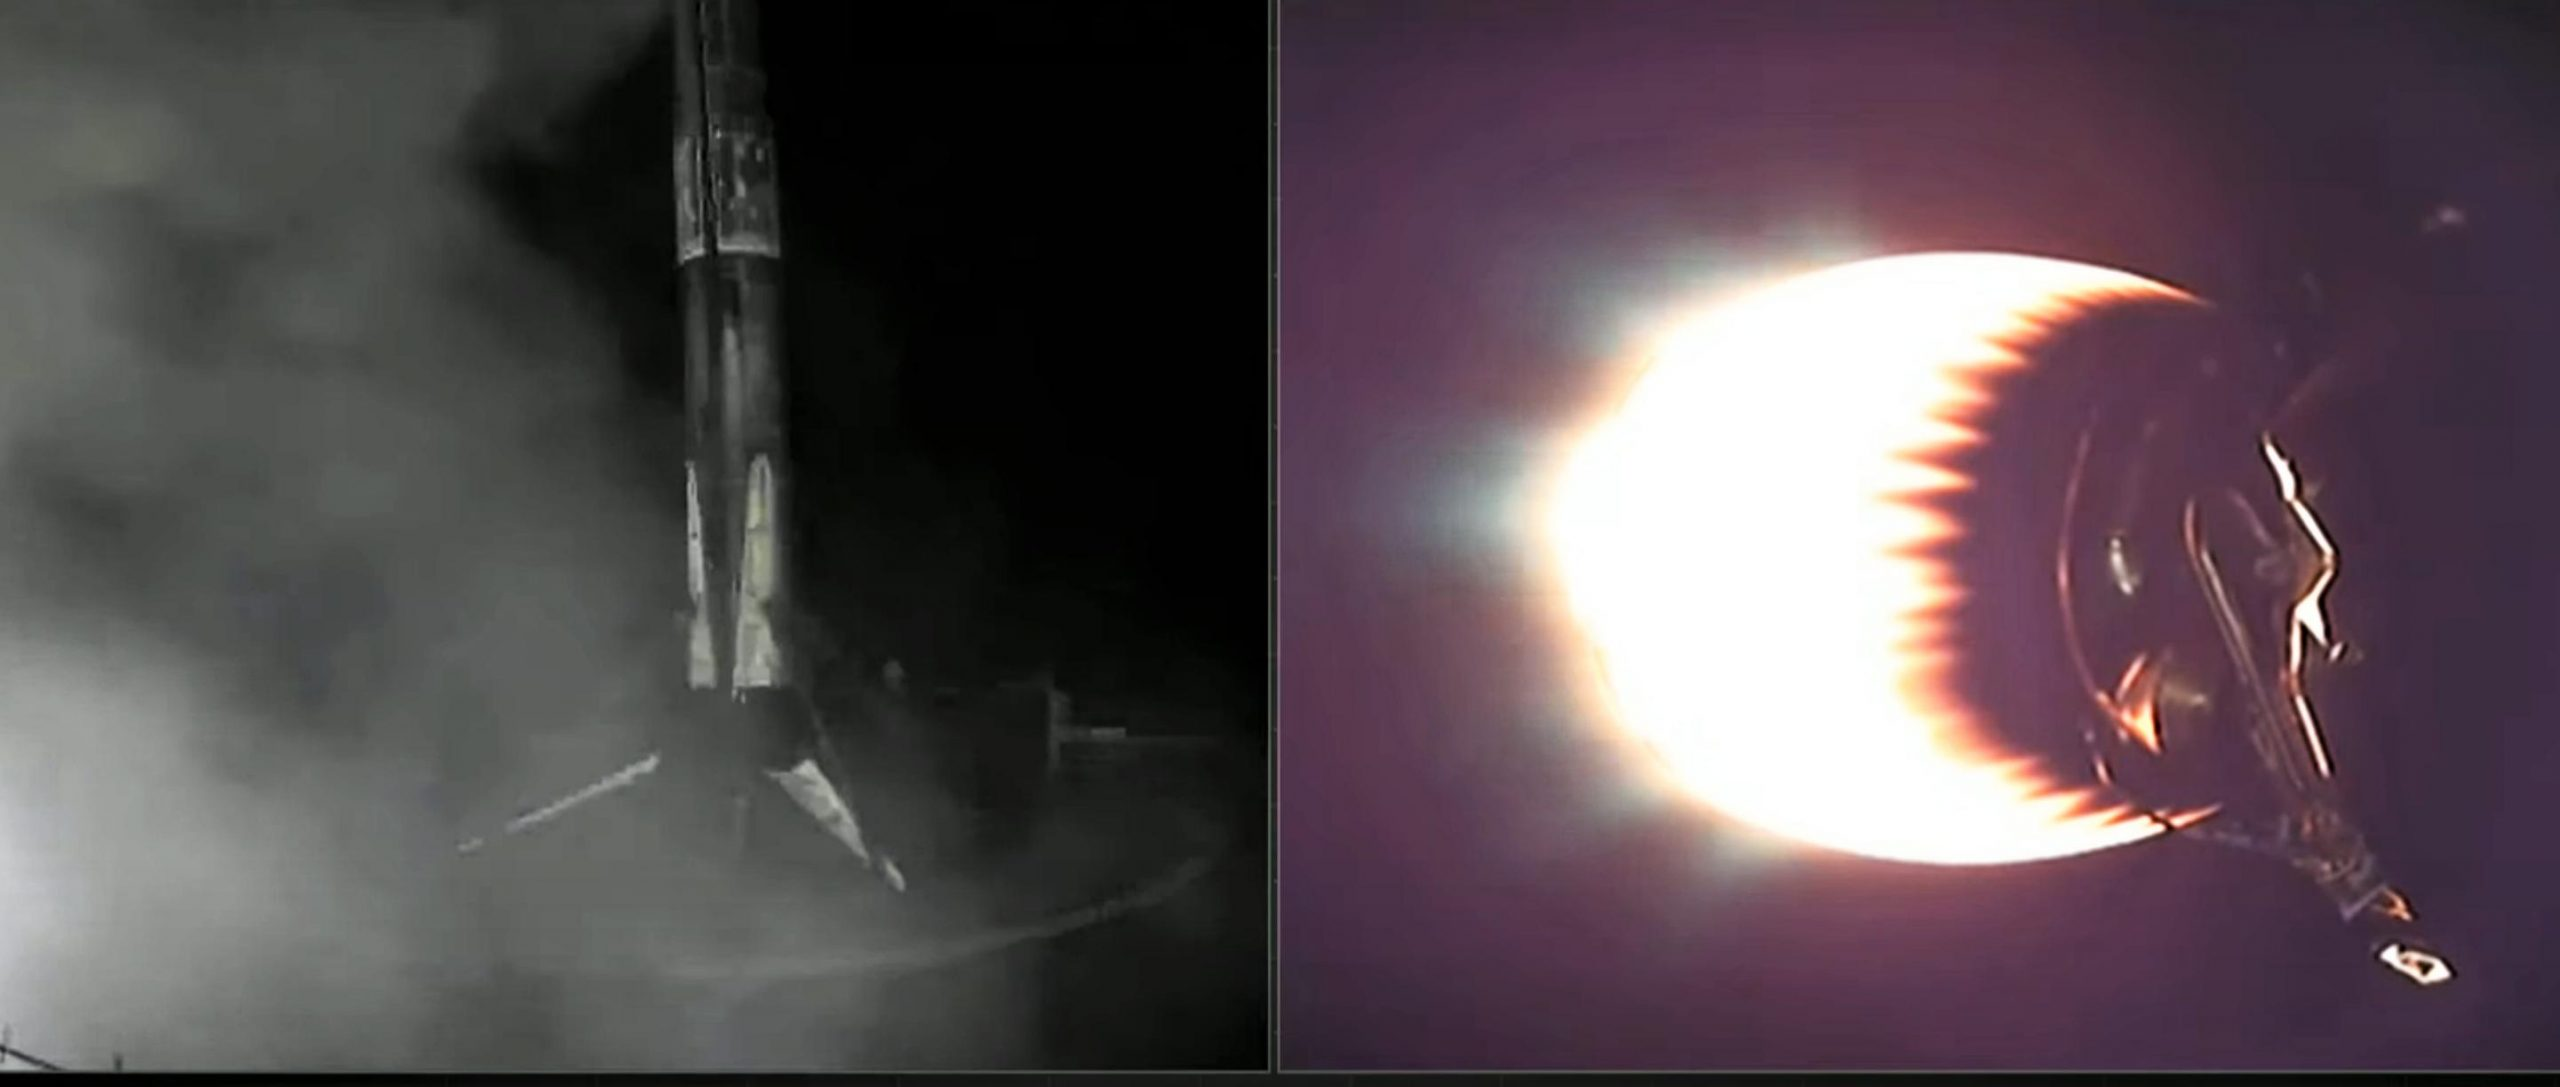 Starlink-18 Falcon 9 B1060 020421 (SpaceX) webcast landing 5